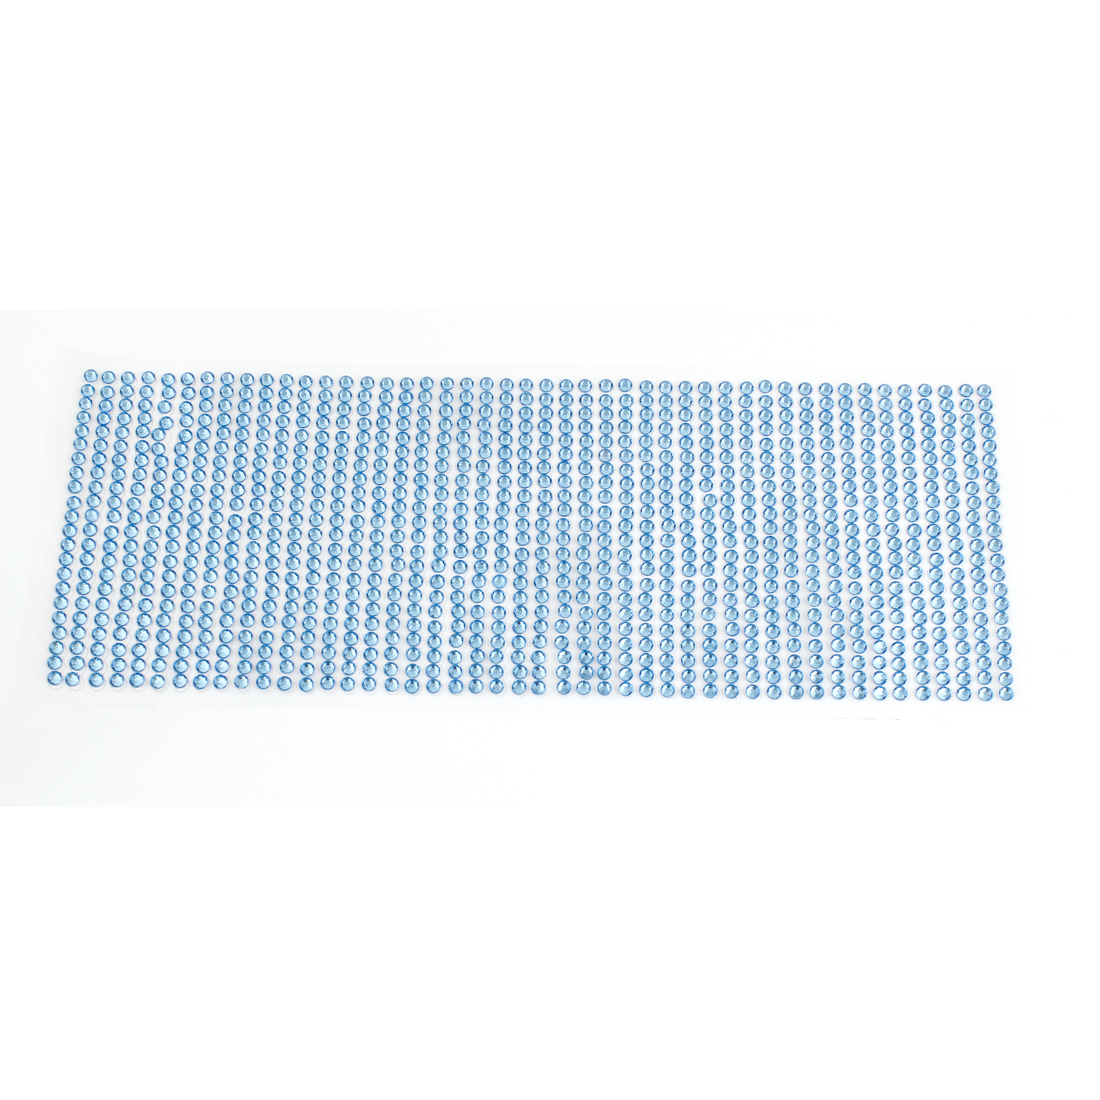 Auto Car Blue Faux Faceted Crystals Connecting Adhesive Paster Badge Sticker